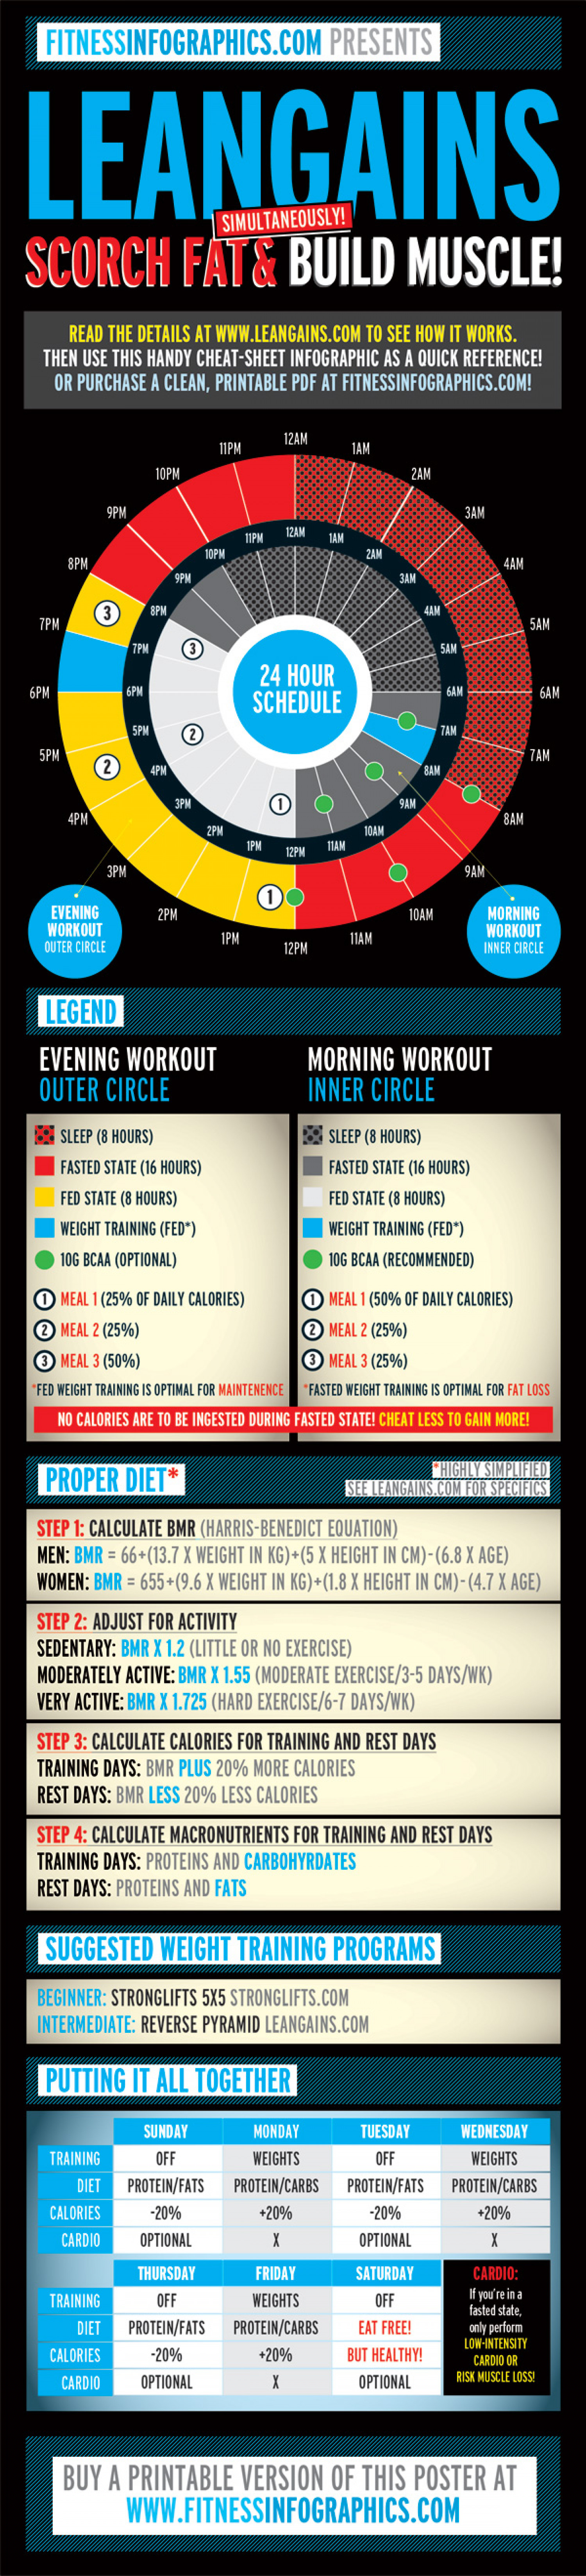 Leangains Infographic